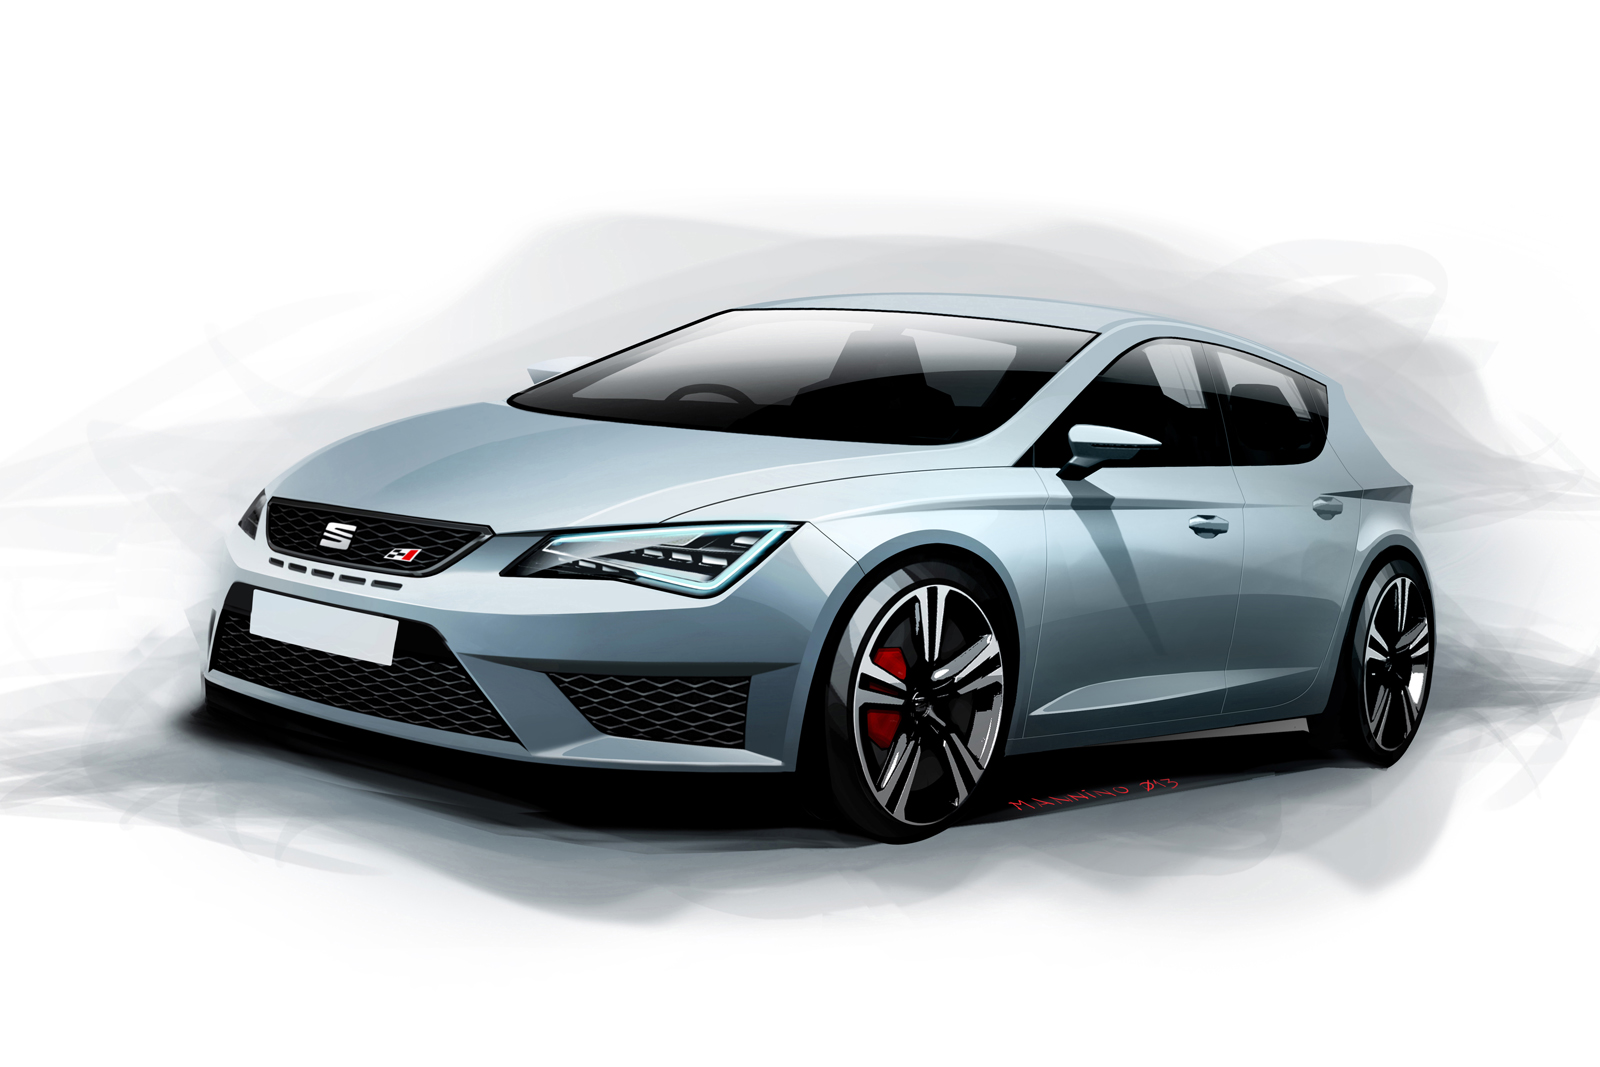 new photos and videos show 280 hp seat leon cupra in detail autoevolution. Black Bedroom Furniture Sets. Home Design Ideas